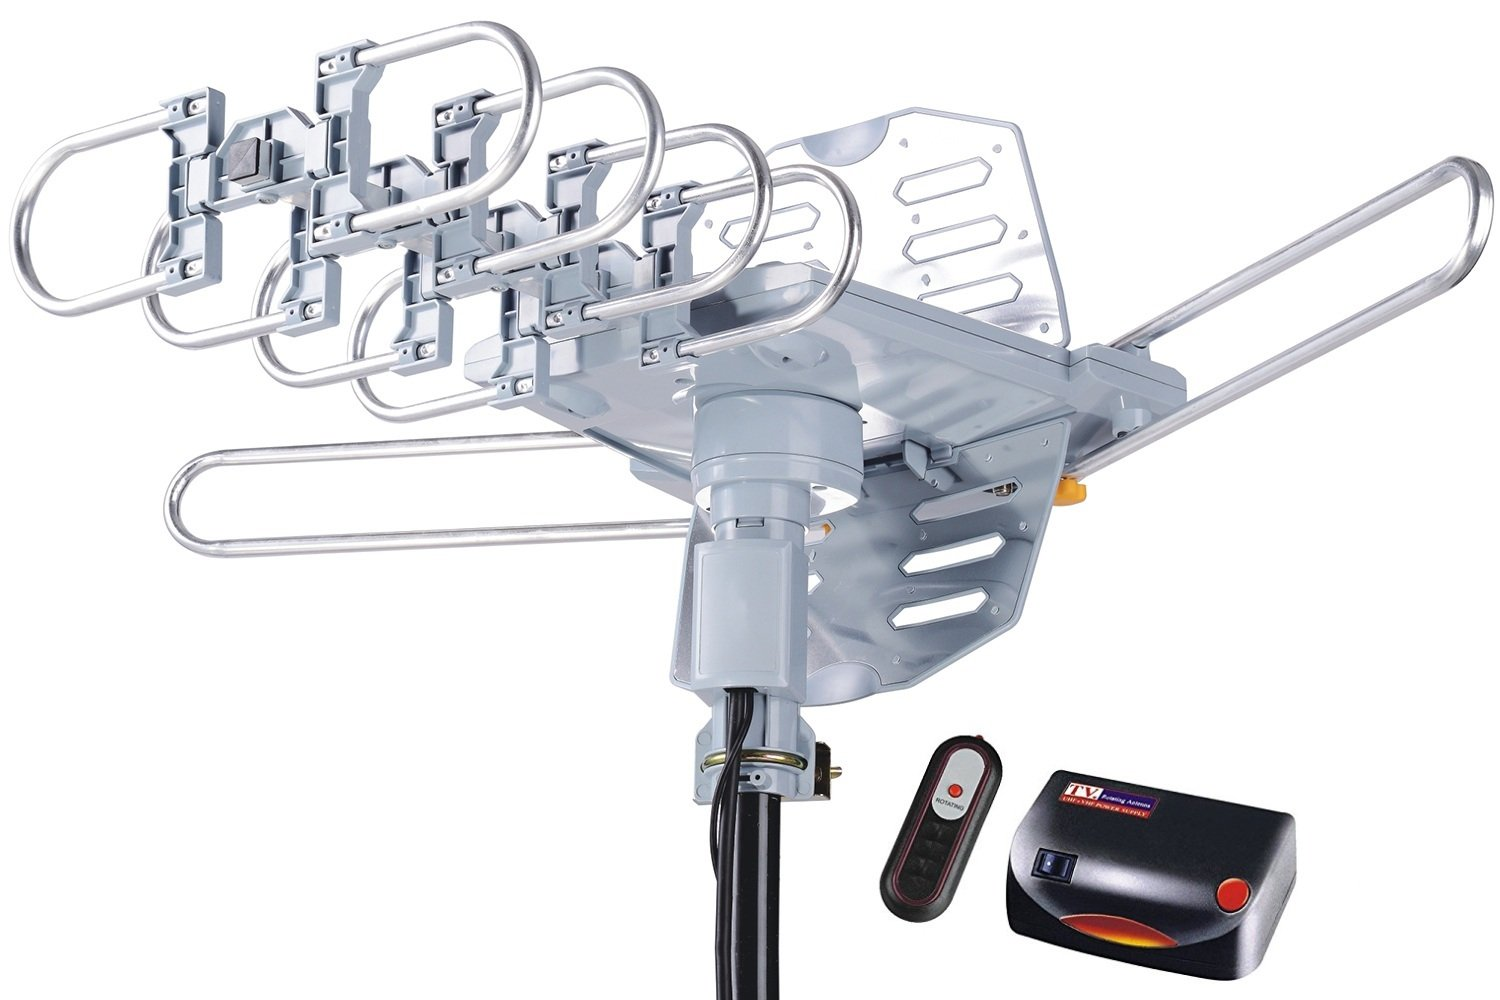 McDuory Amplified Digital Outdoor HDTV Antenna 150 Miles Long Range - 360 Degree Rotation Remote Control - Tools Free Installation - Support 2 TVs 2608B